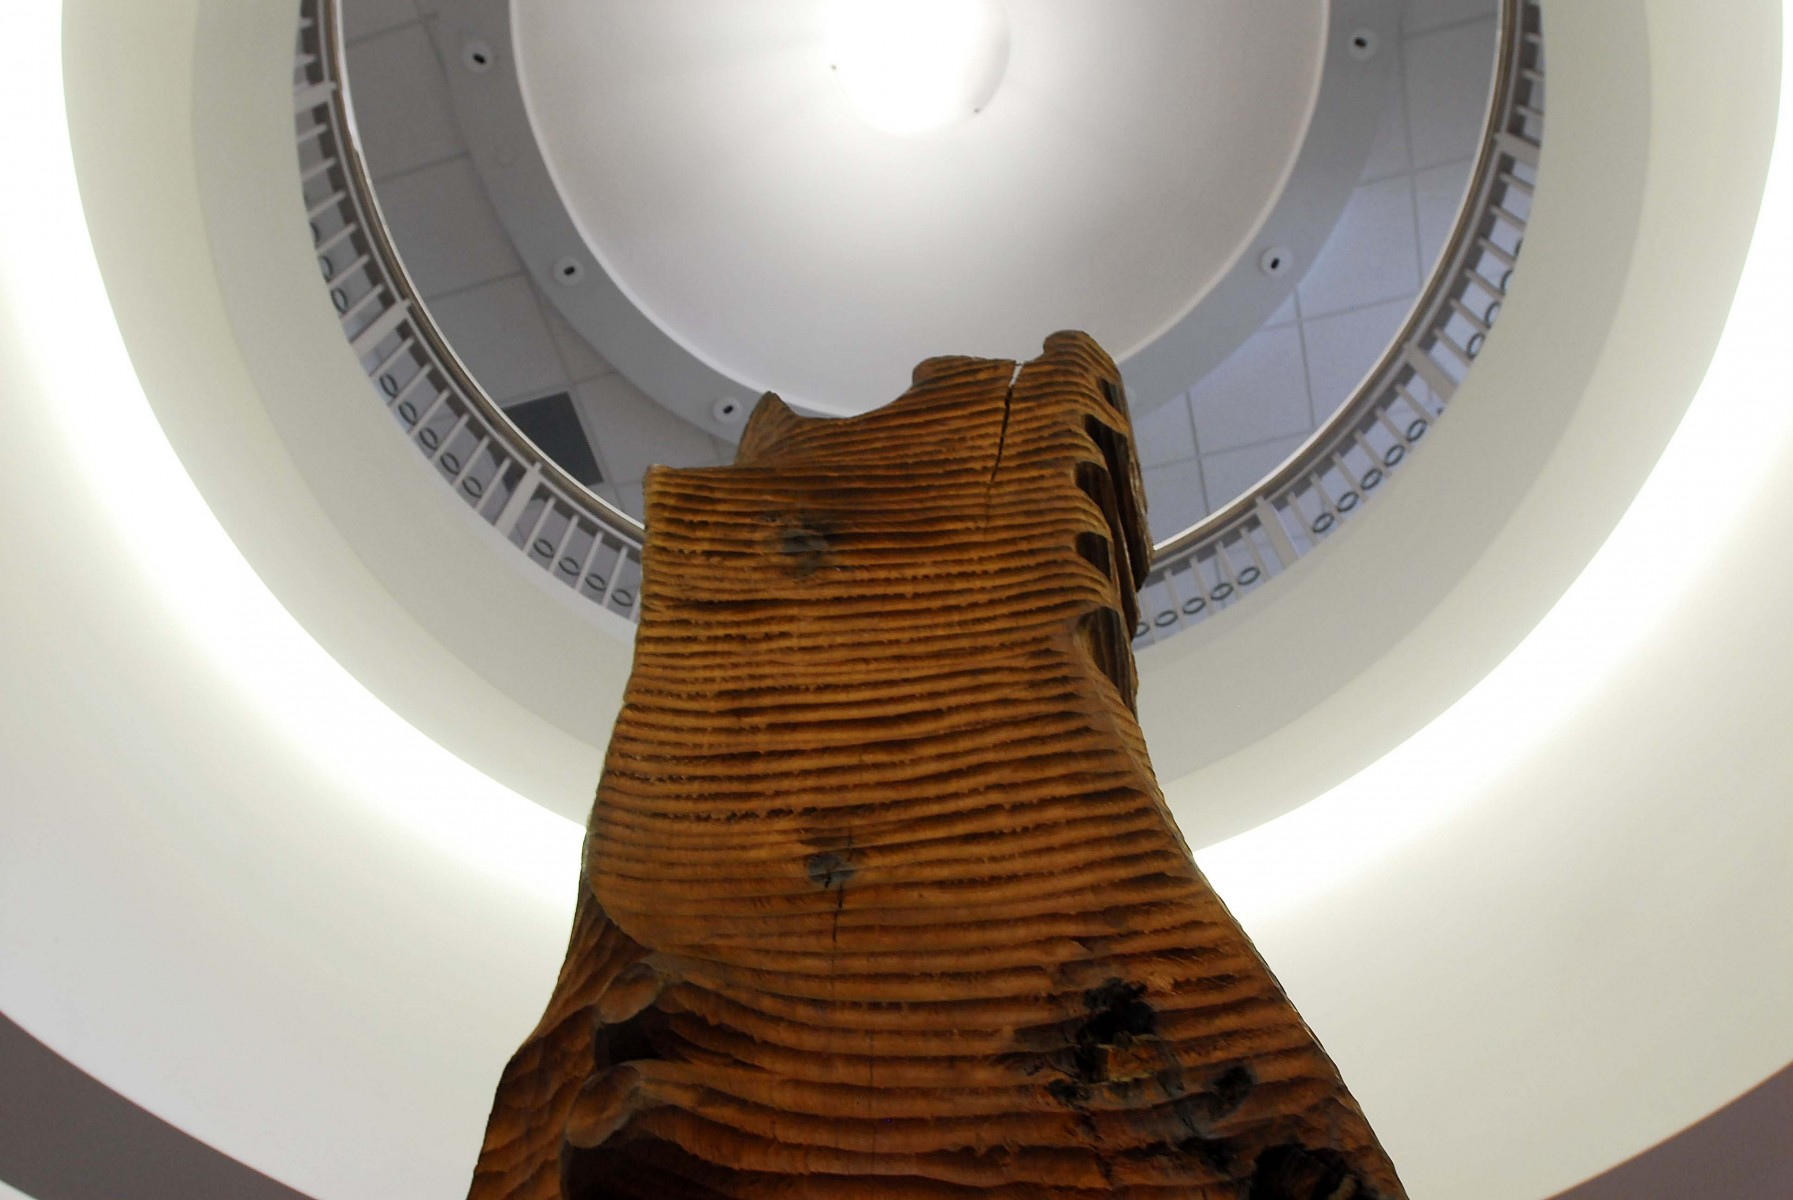 thin wooden sculpture from bottom of frame looking up into oculus of room